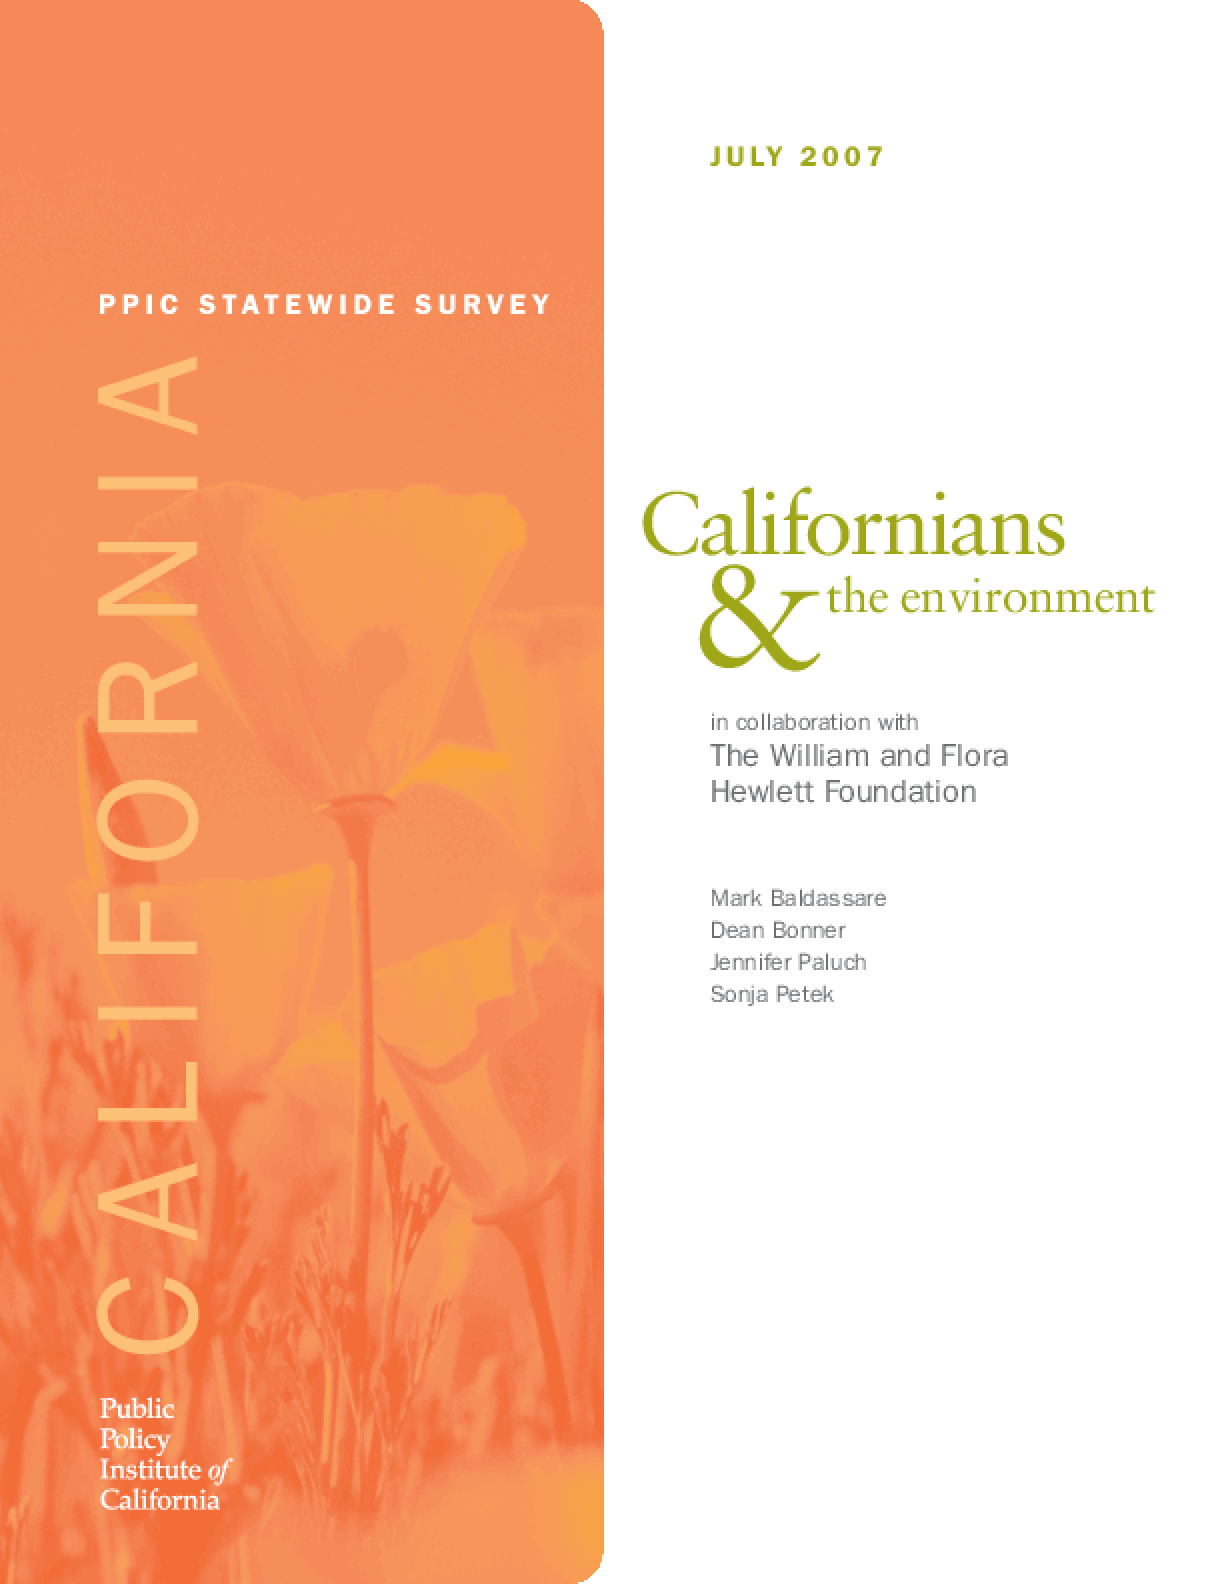 PPIC Statewide Survey: Californians and the Environment 2007